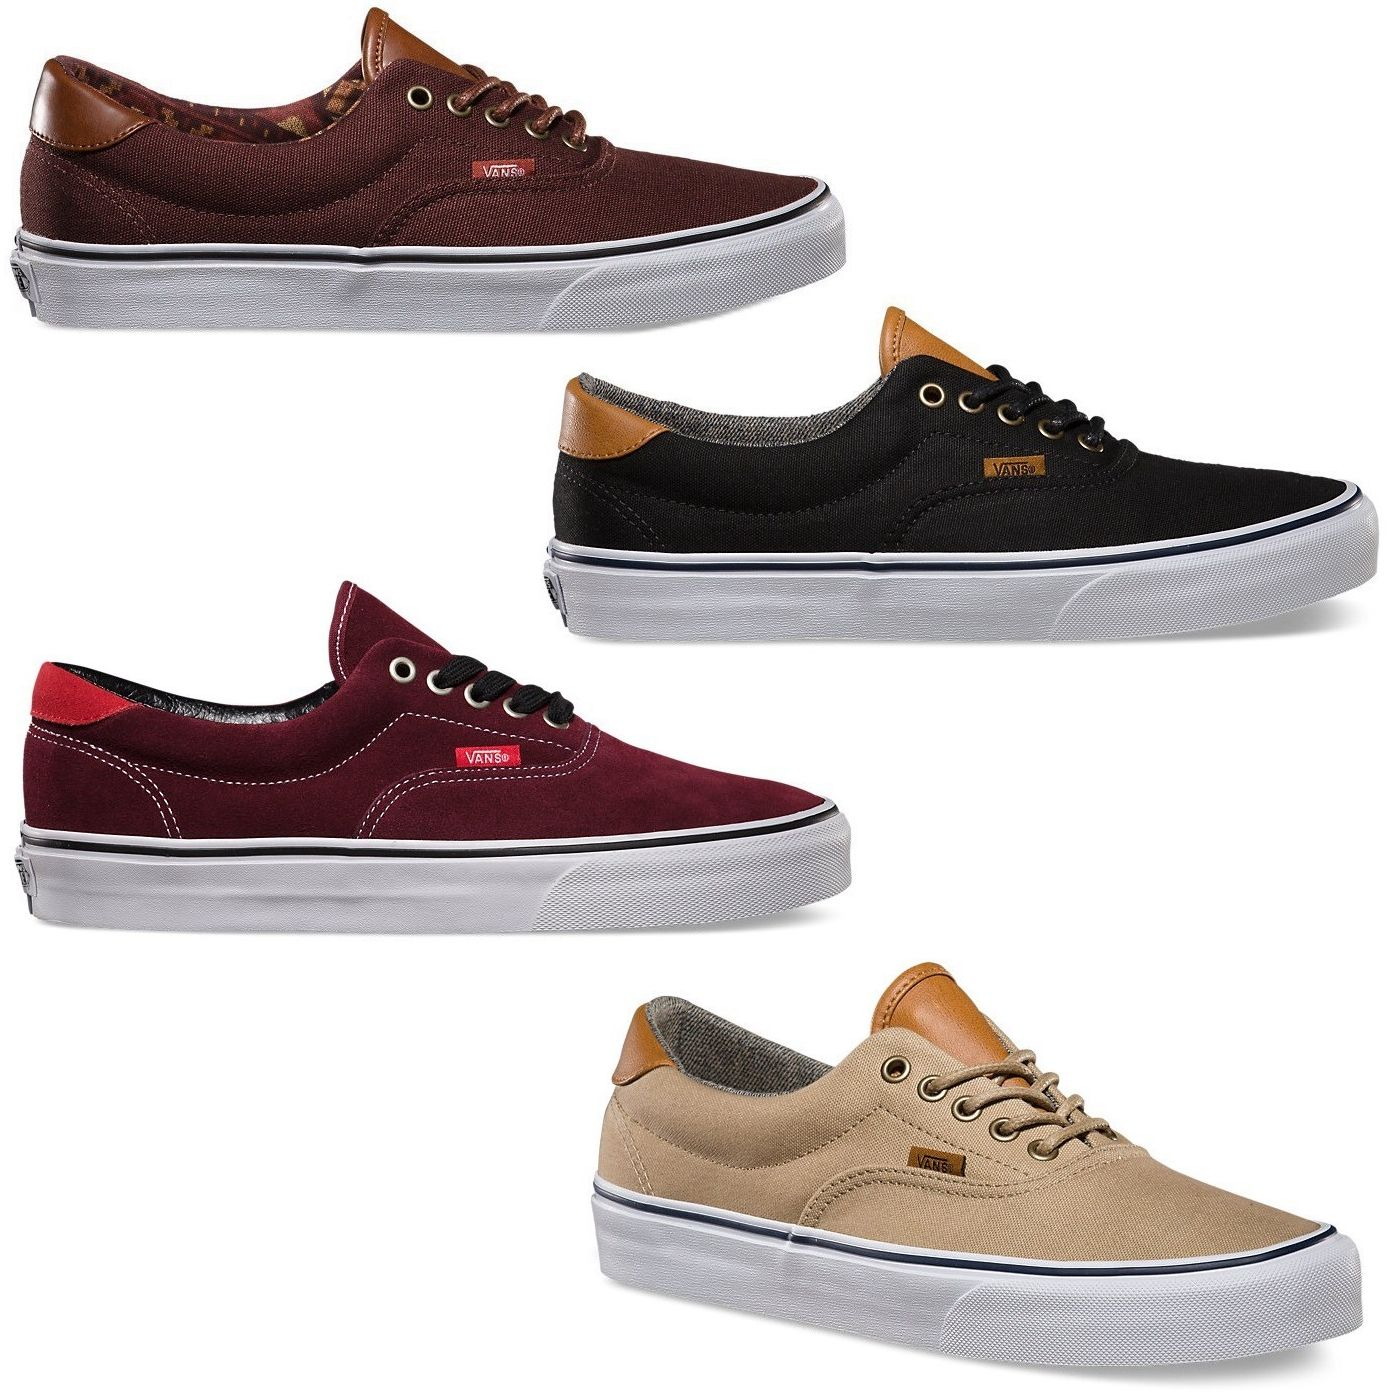 vans era 59 schuhe sneaker herren diverse farben ebay. Black Bedroom Furniture Sets. Home Design Ideas